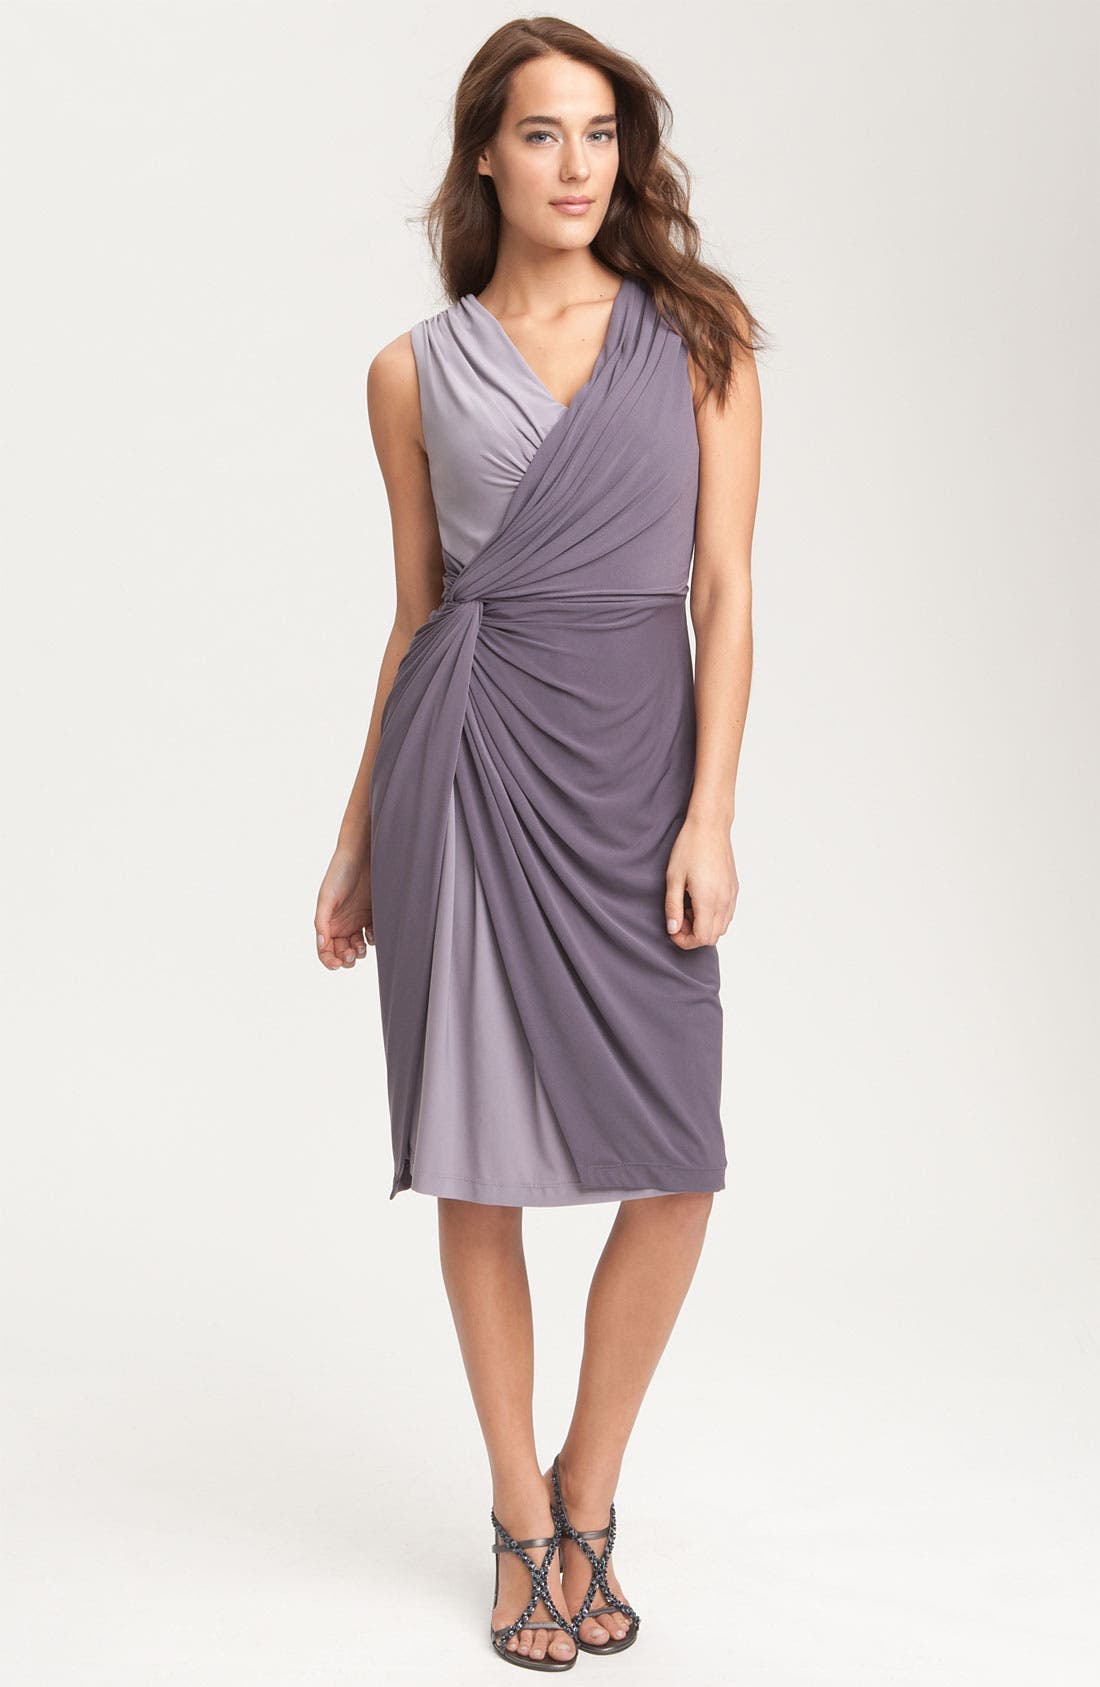 Alternate Image 1 Selected - Adrianna Papell Two Tone Overlay Jersey Dress